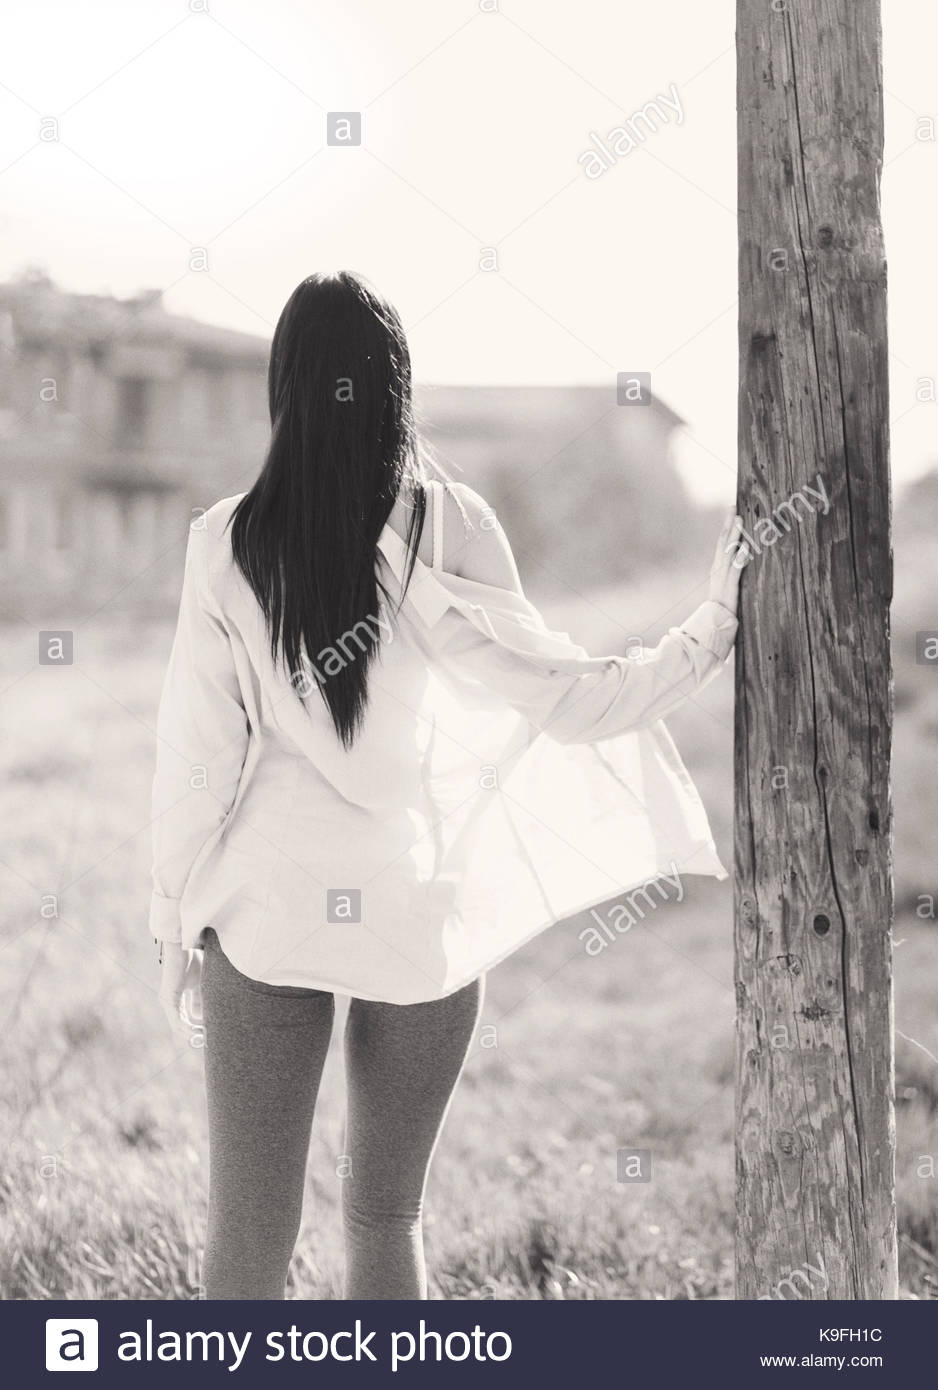 Black and white portrait of a girl leaning against a pole - Stock Image